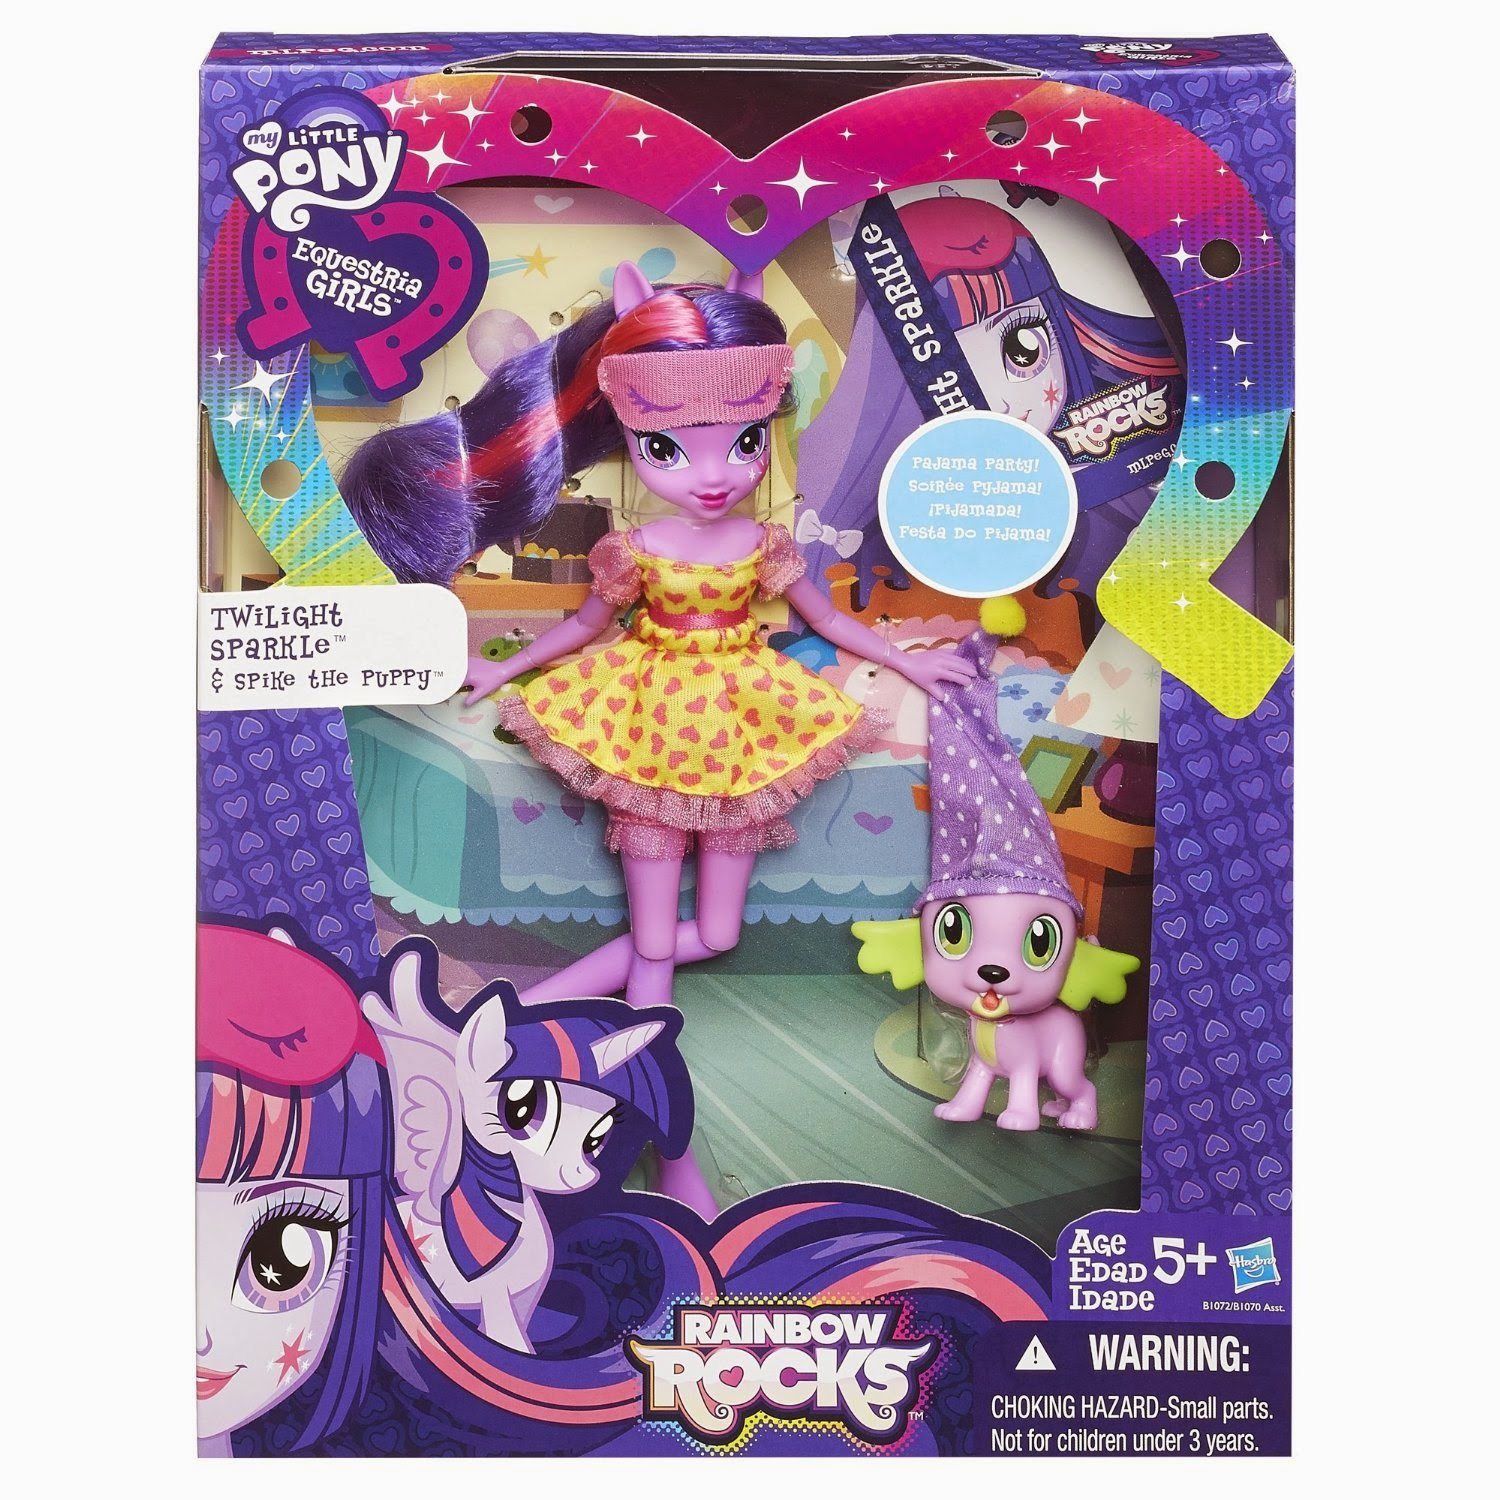 Twilight Sparkle and Spike the Dog Equestria Girls Set